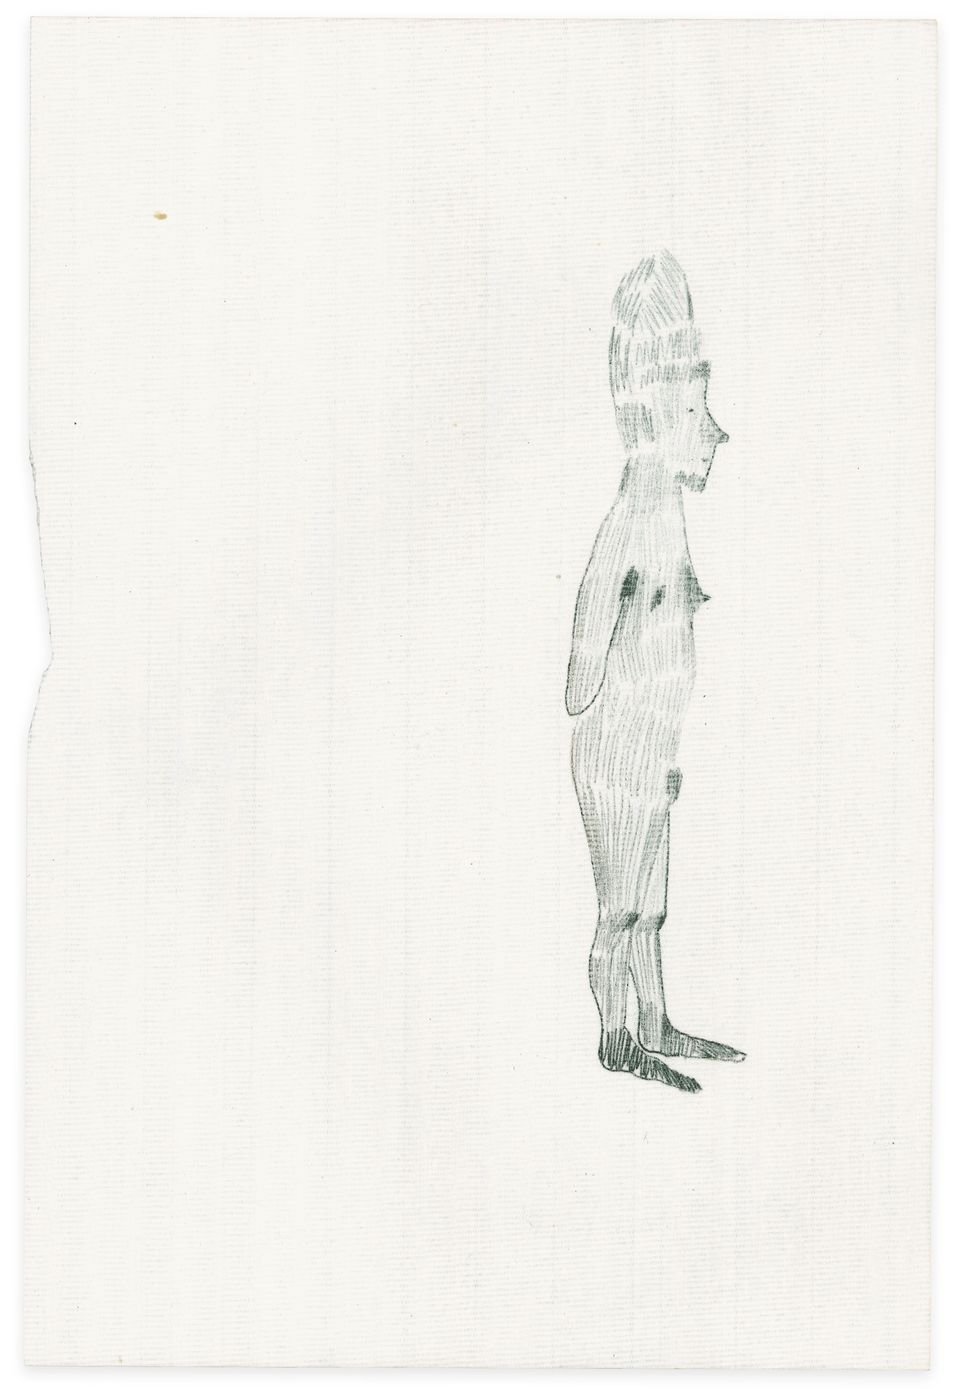 Rosemarie Trockel, I feel something, 1995, Pencil on paper, 31.4 x 21cm, Courtesy the artist and Sprüth Magers.